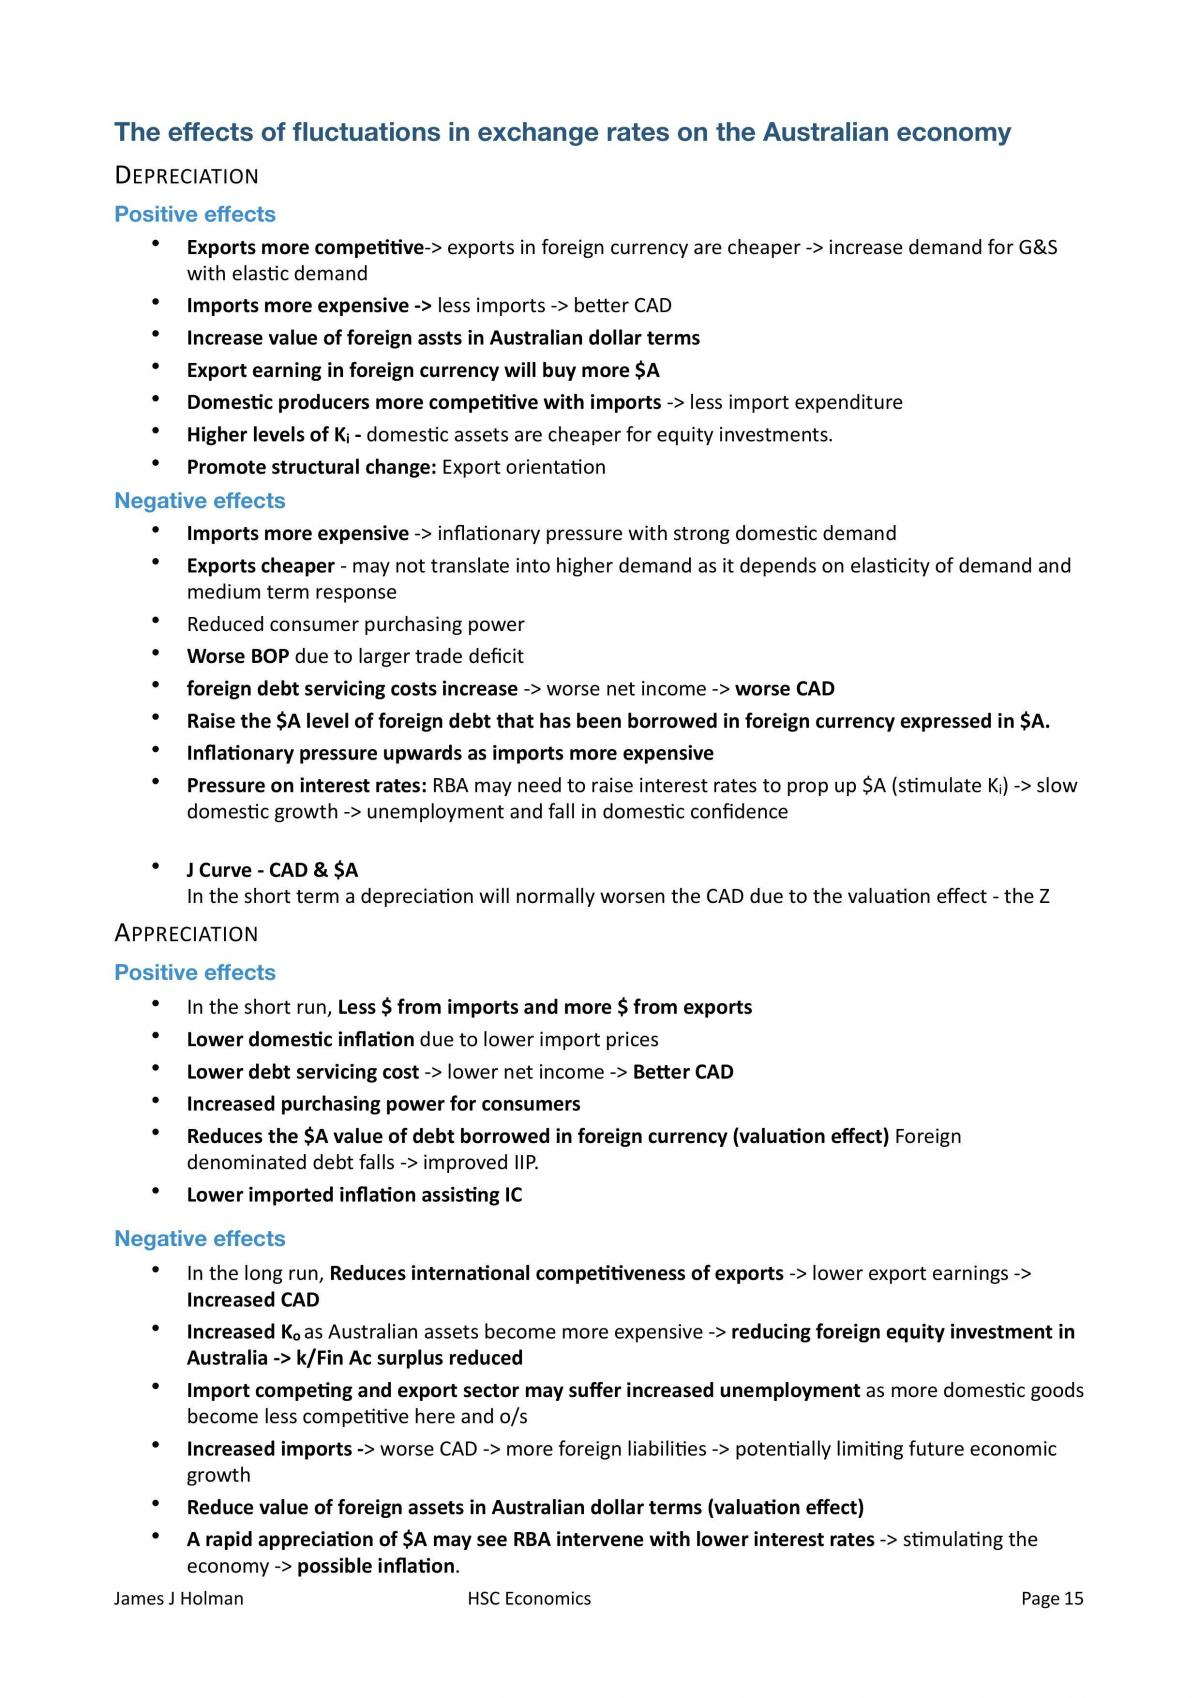 Australia's Place in the Global Economy - Page 15